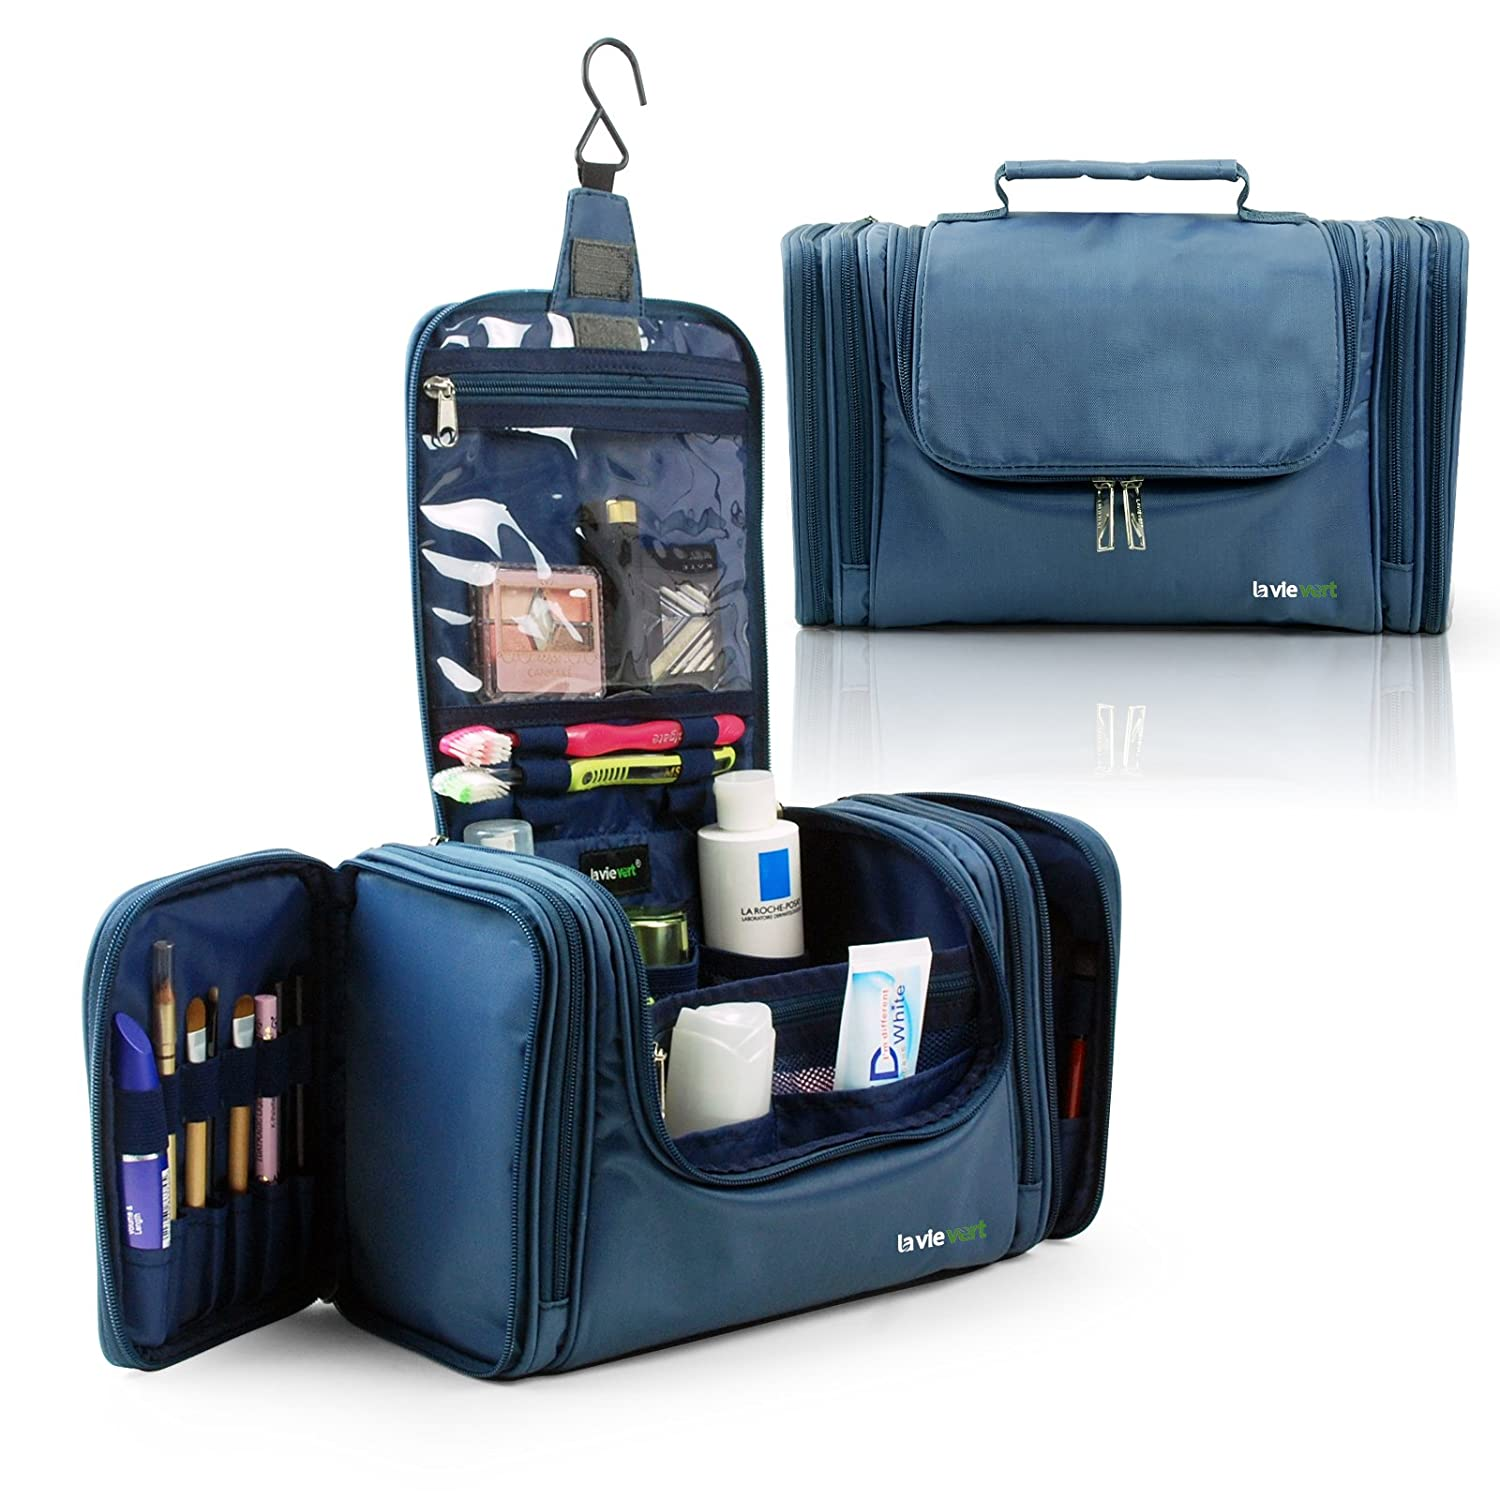 Lavievert Toiletry Bag/Makeup Organizer/Cosmetic Bag/Portable Travel Kit Organizer/Household Storage Pack/Bathroom Storage with Hanging for Business, Vacation, Household - Blue